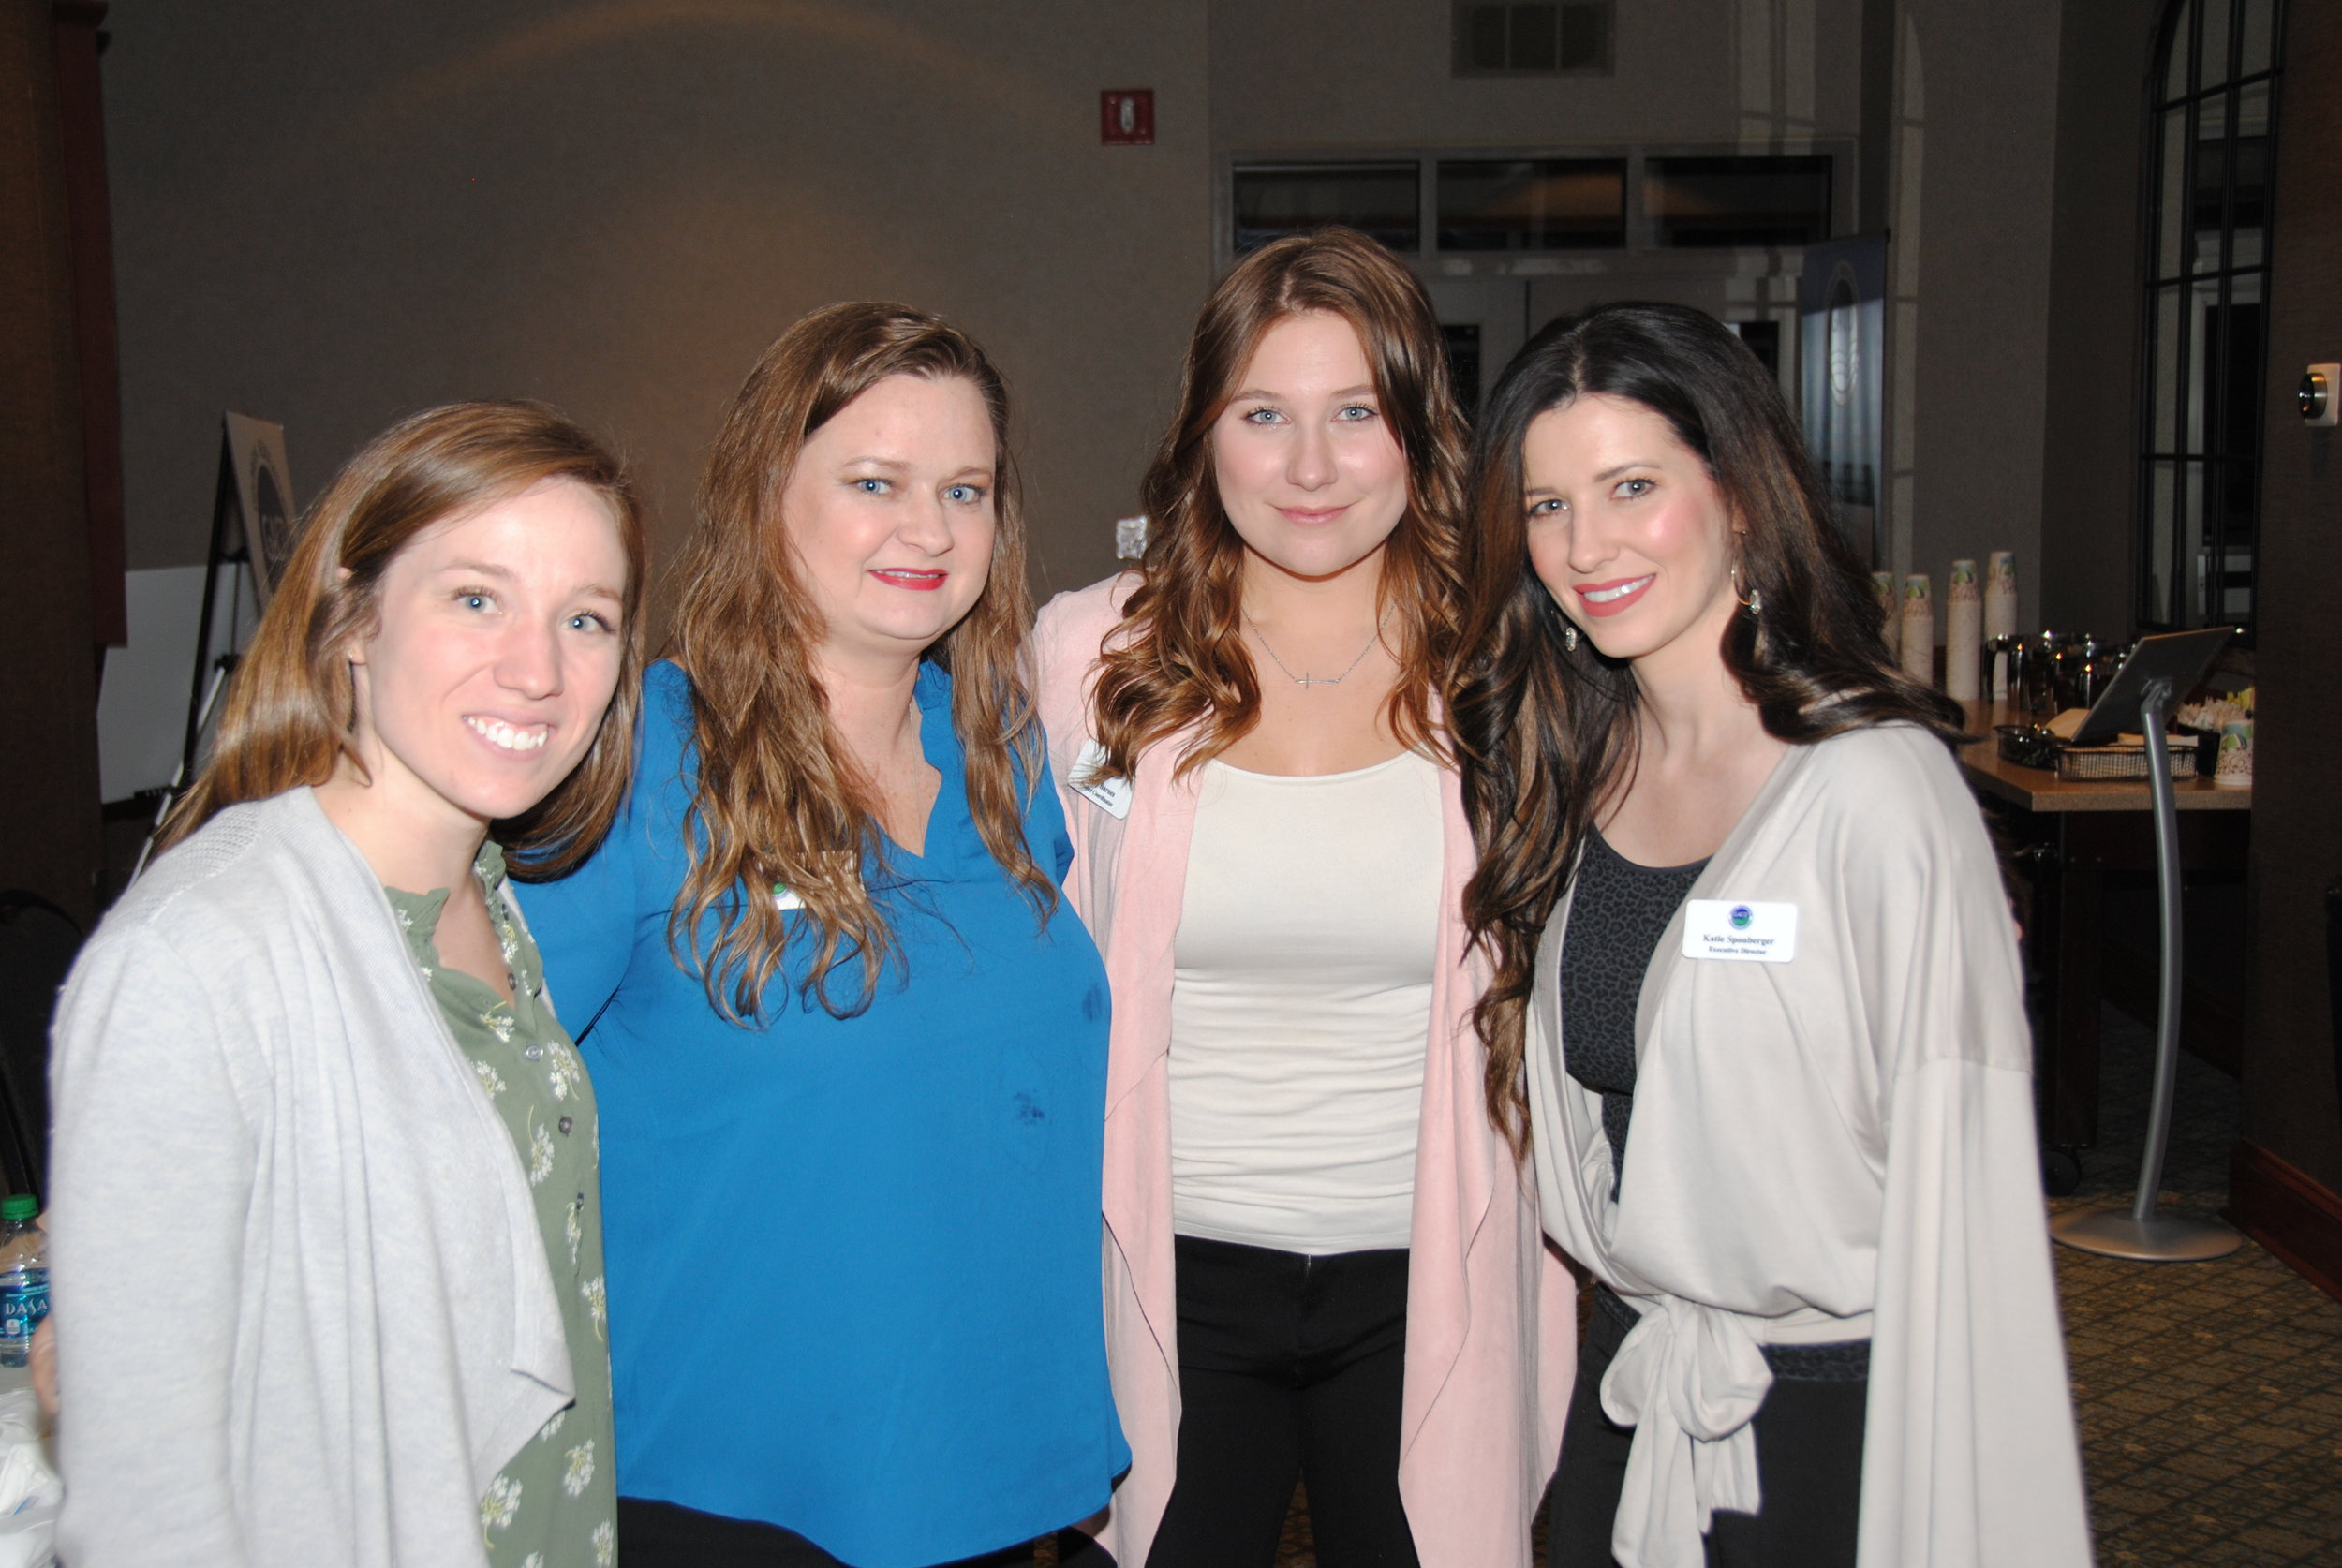 Katie Sanders (North GA Program Manager), Michelle Boone (South GA Program Manager), Mady Barnes (Project Coordinator) and Katie Sponberger (Executive Director)